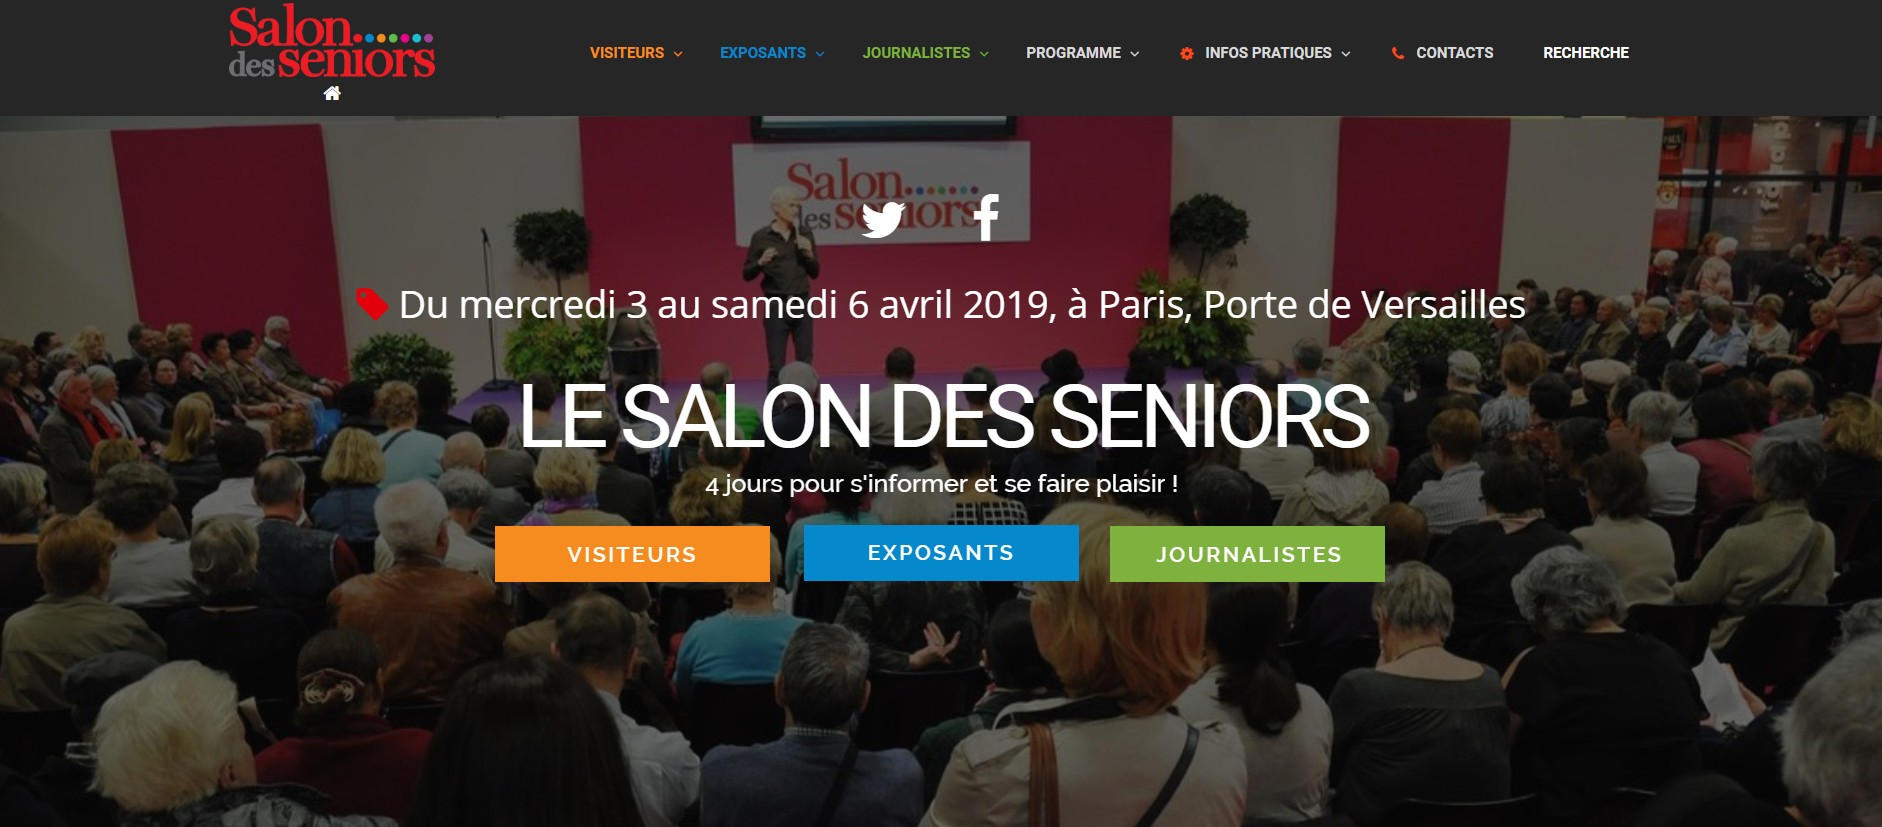 Salon des séniors paris 2019 Dax Hôtel Dax O'Thermes